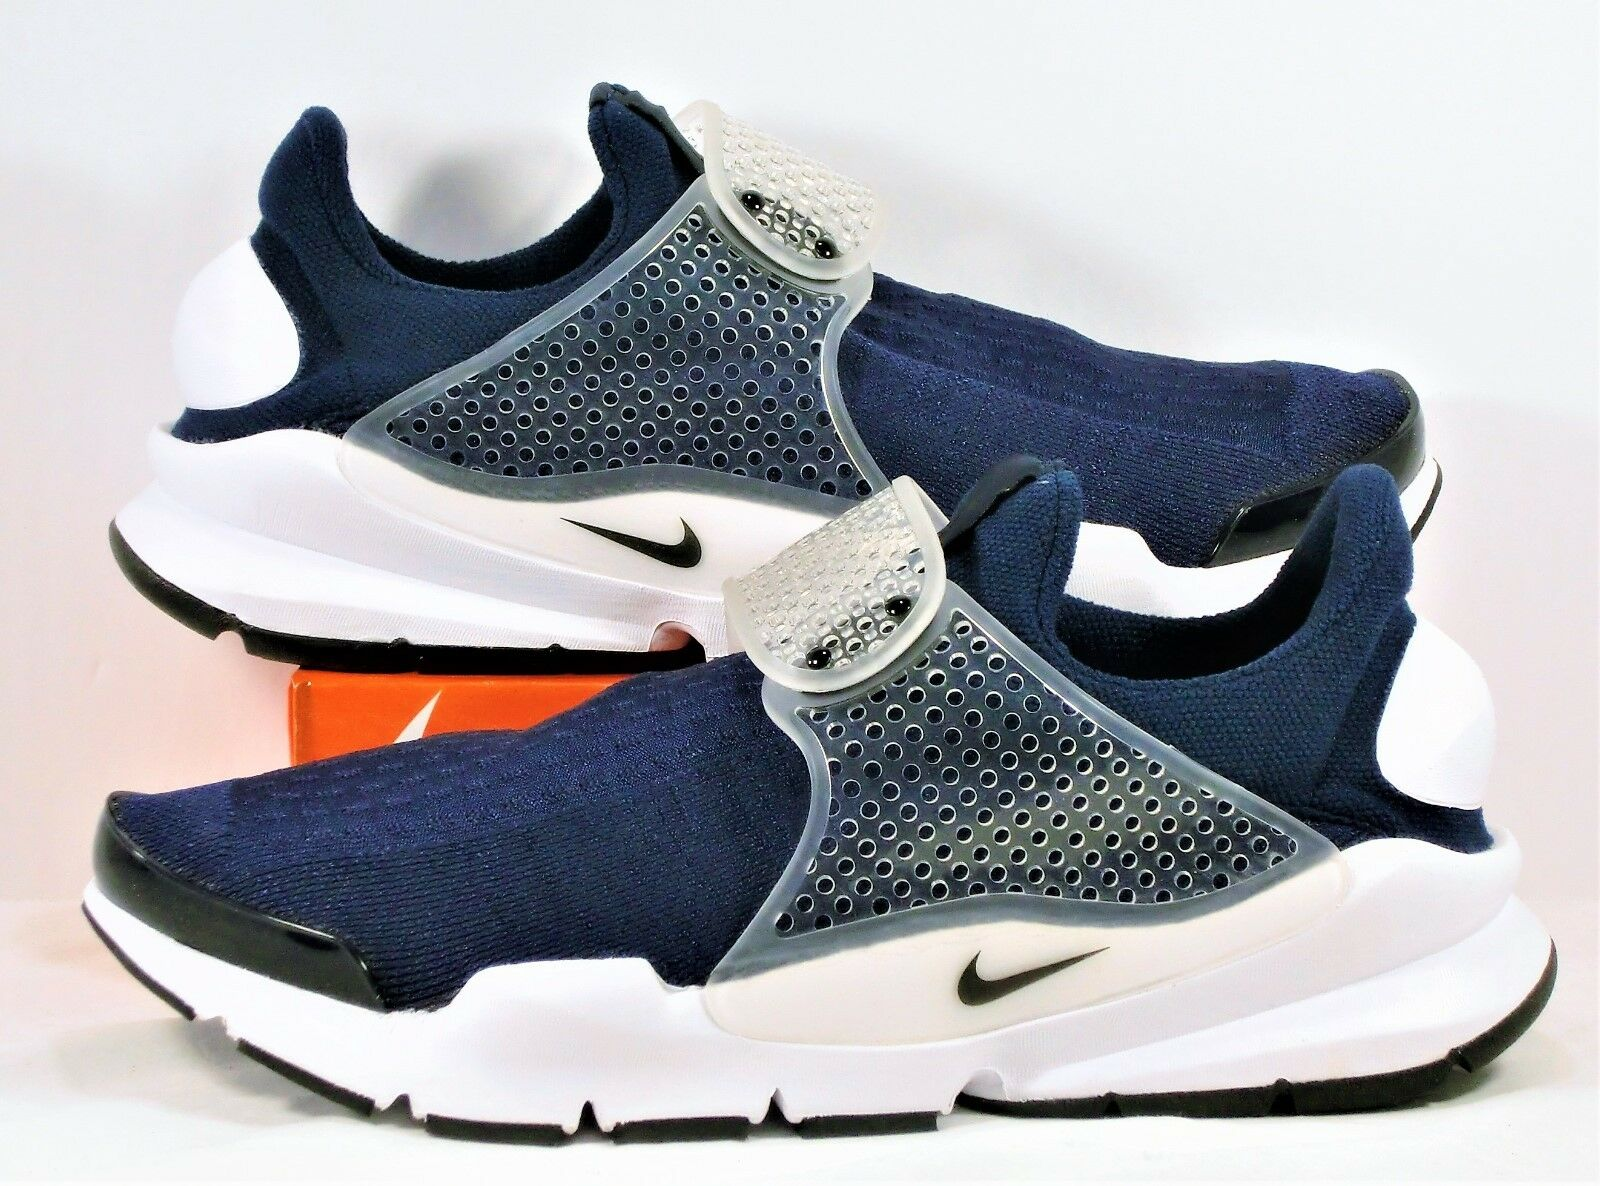 Nike Sock Dart KJCRD Midnight Navy Running & Training Shoes Sz 13 NEW 819686 400